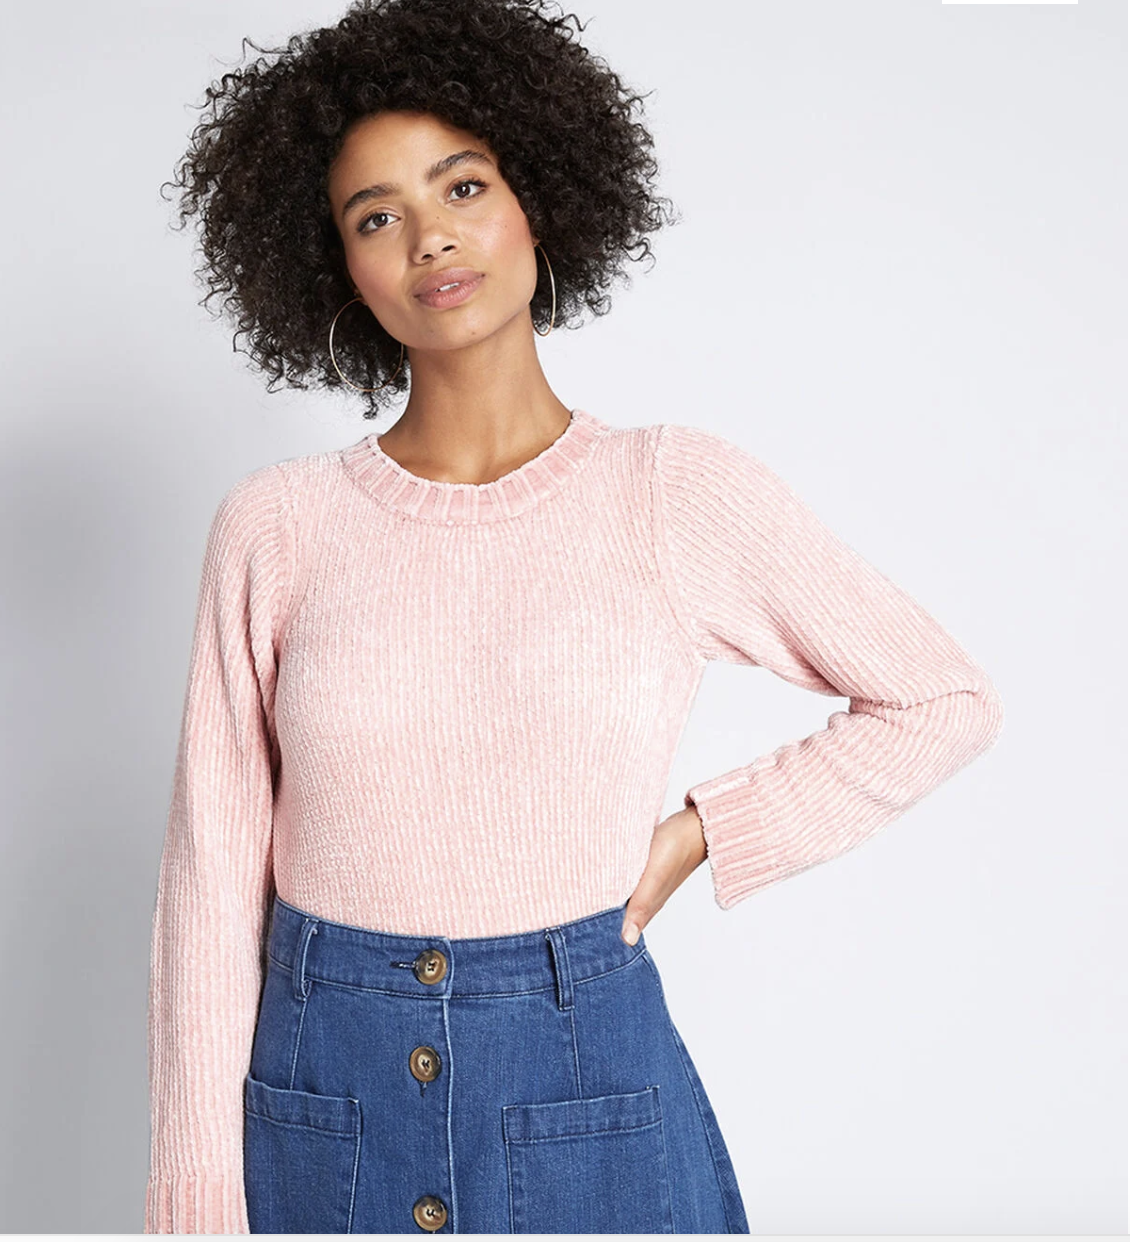 Model in ribbed blush pink chenille sweater